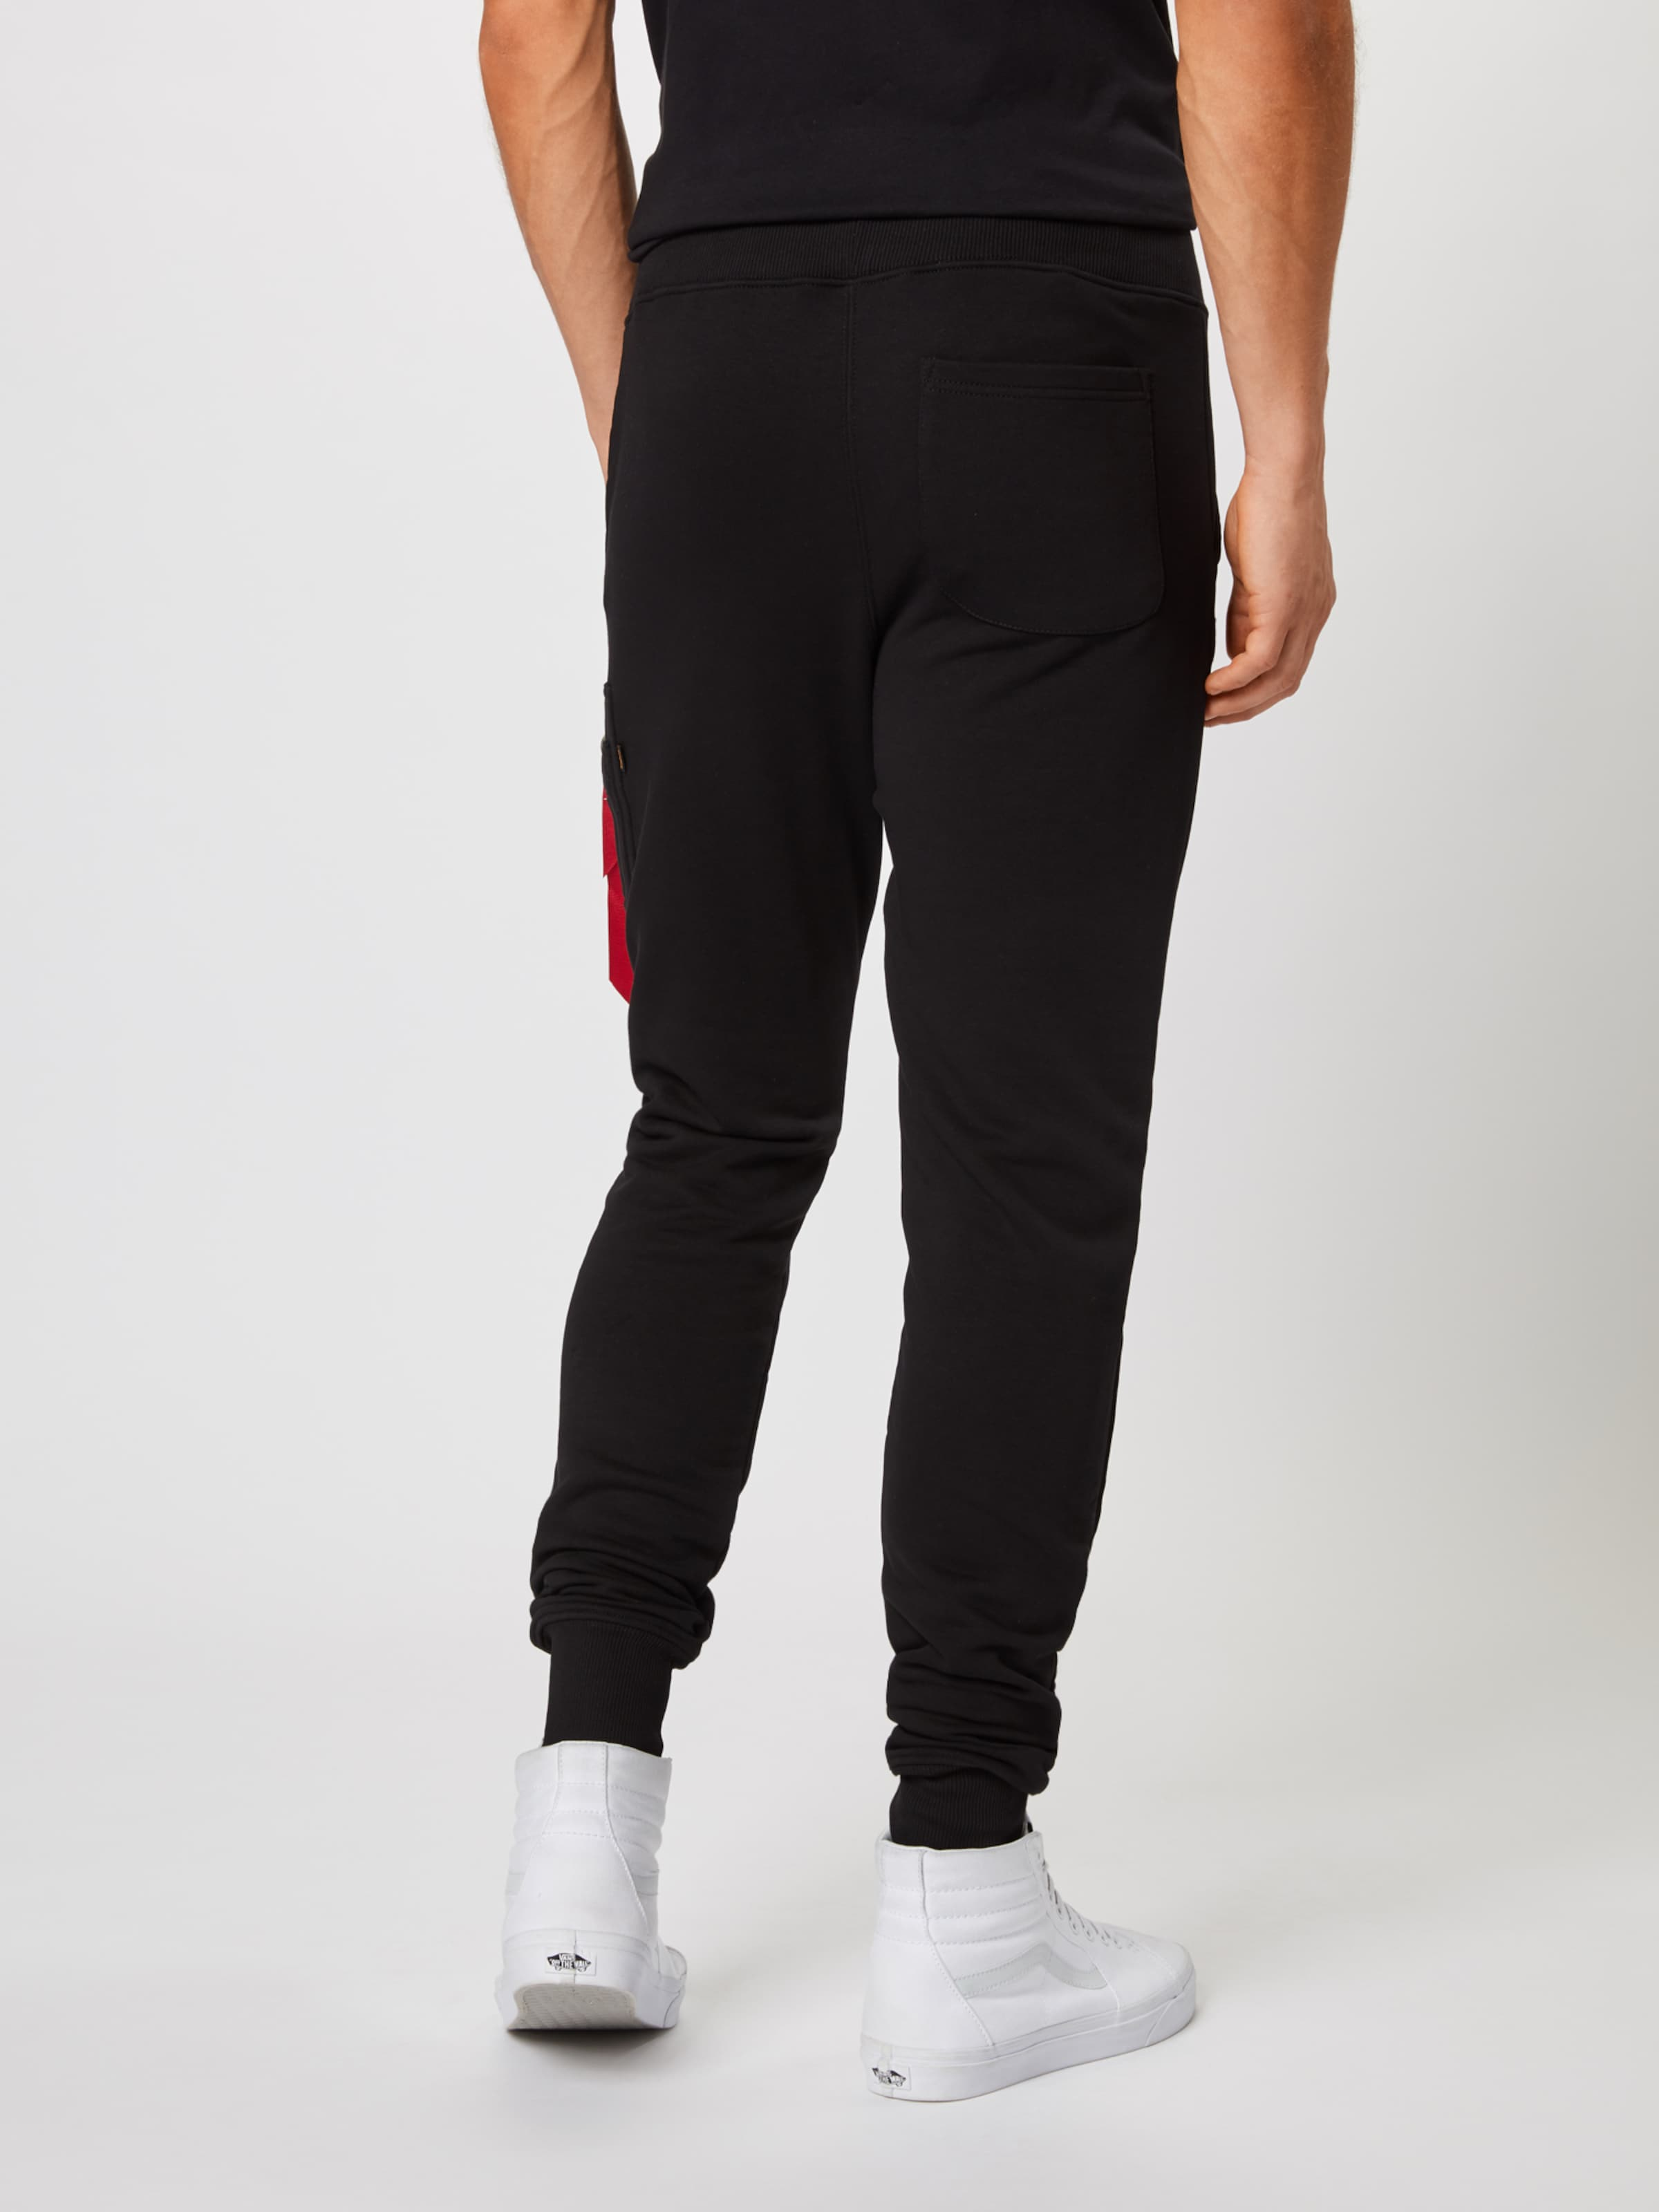 En Noir 'x Pant' Pantalon fit Cargo Alpha Industries Slim yYfb76g